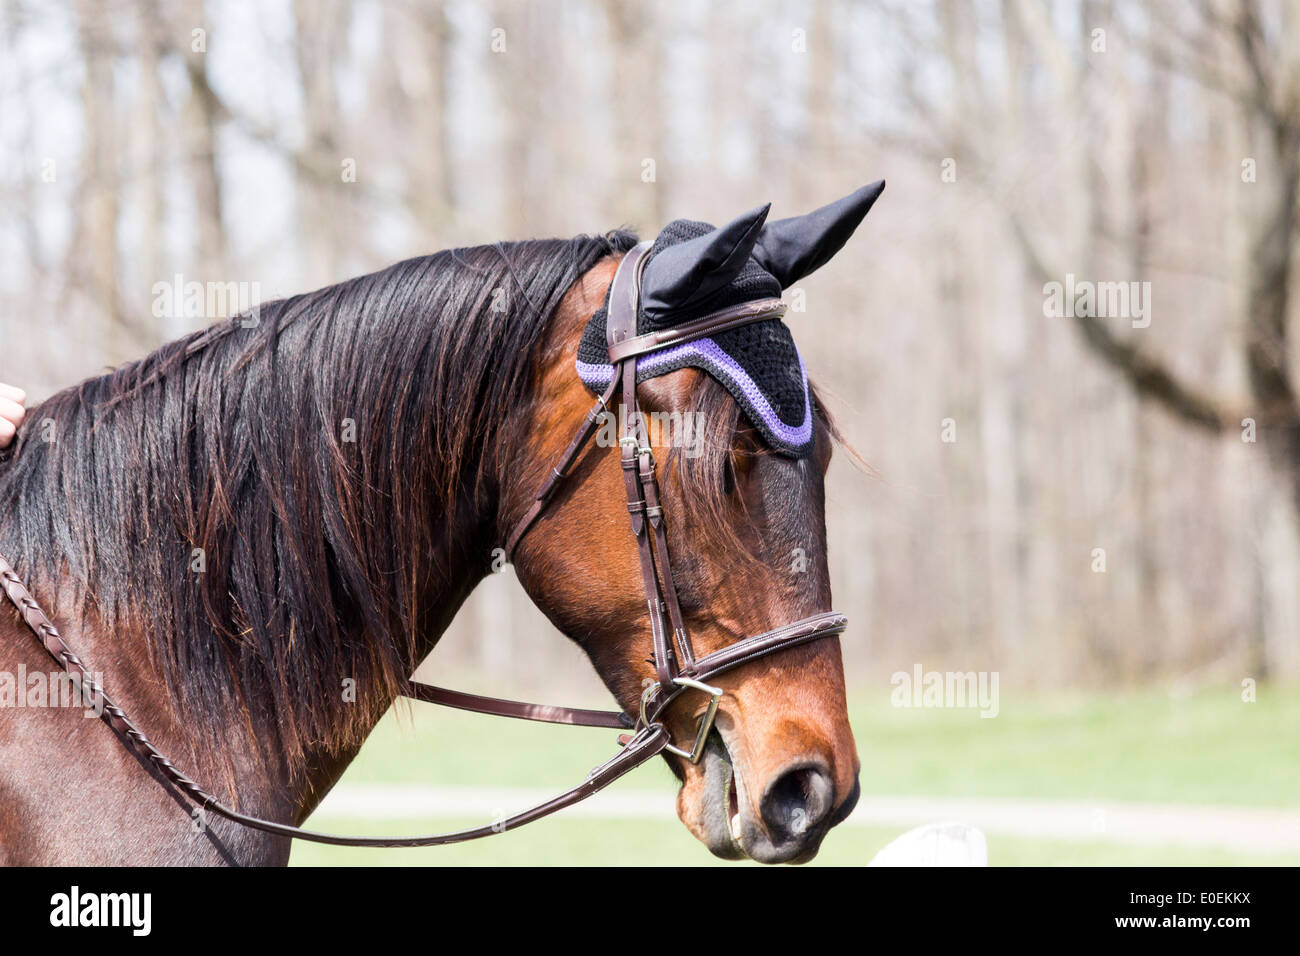 Bay horse head wearing english snaffle bridle with D-bit and ear protectors - Stock Image